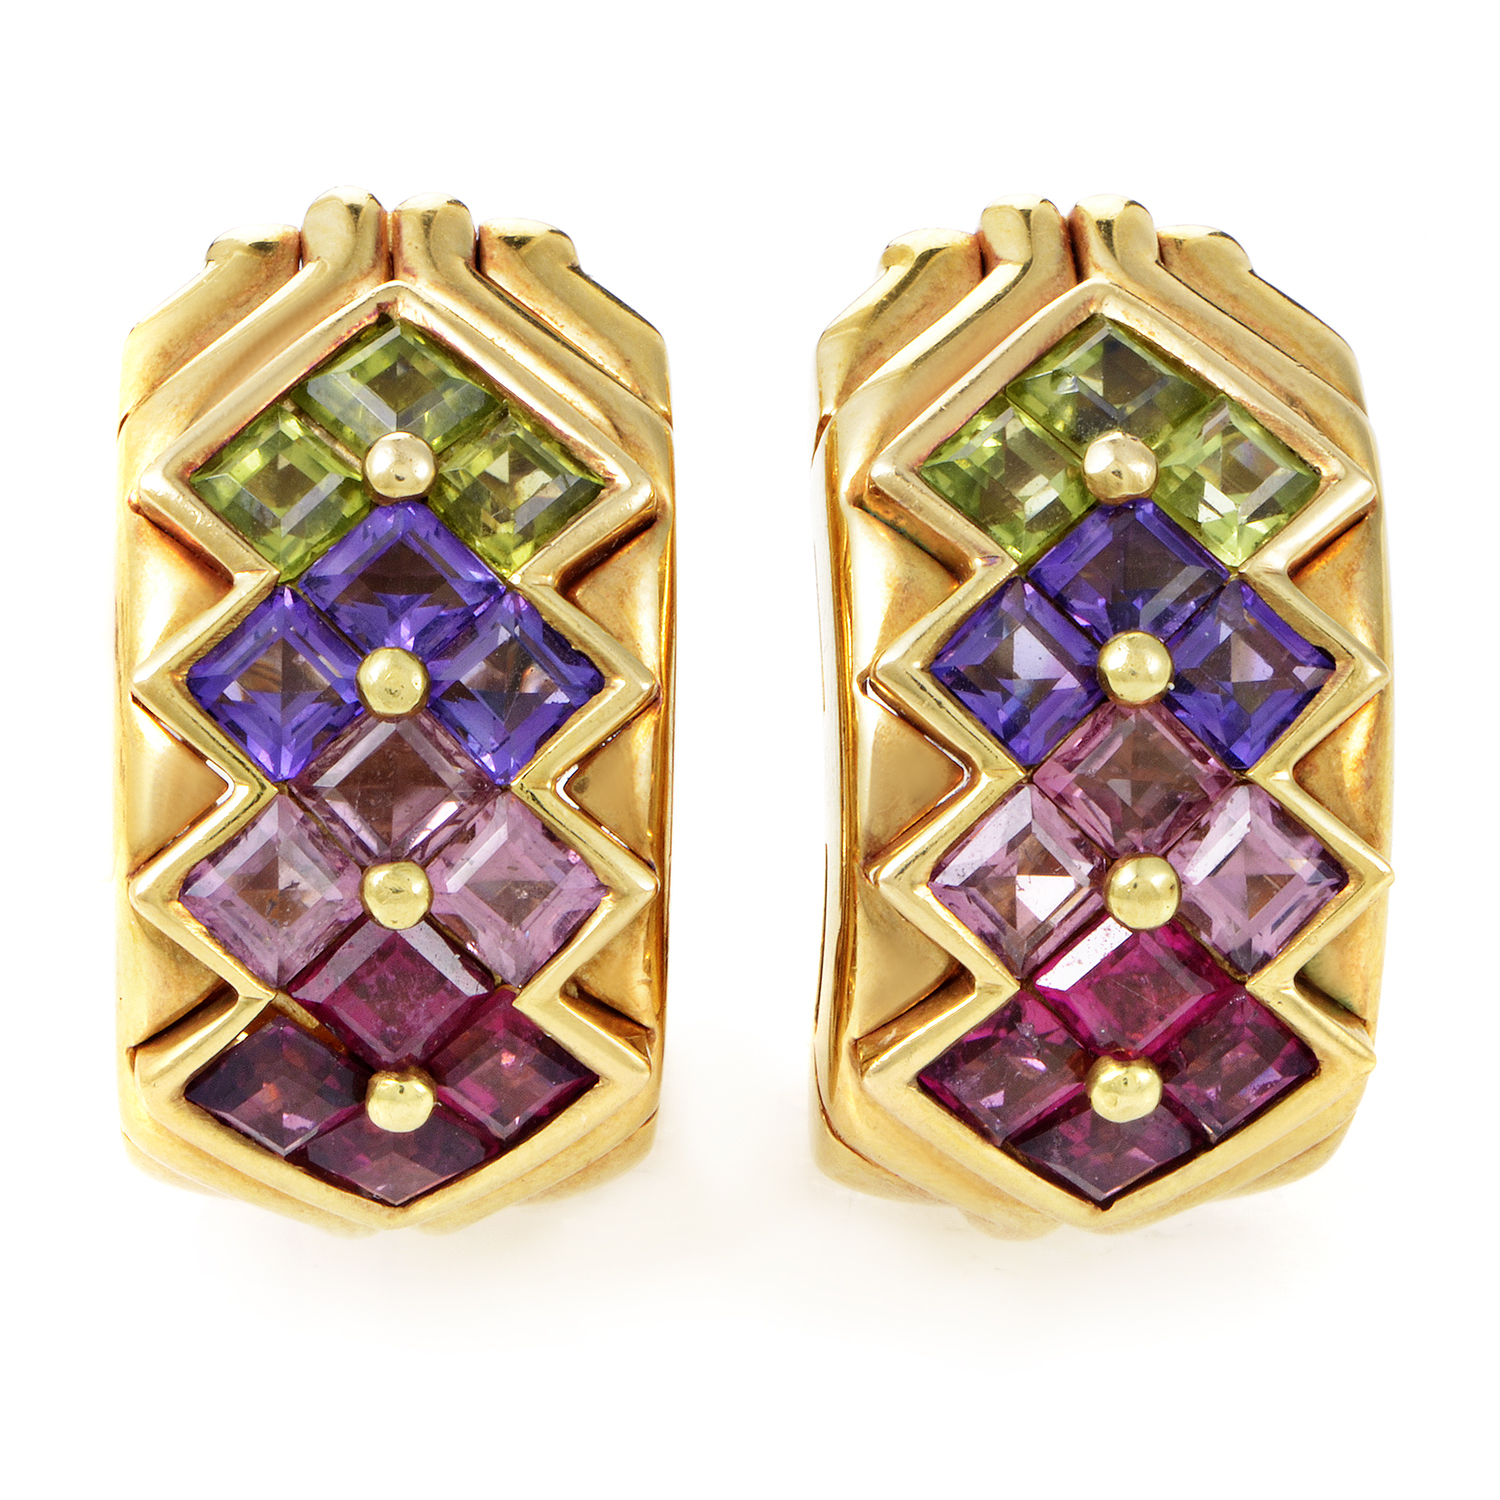 Bvlgari 18K Yellow Gold Multi-Color Stone Clip-On Earrings